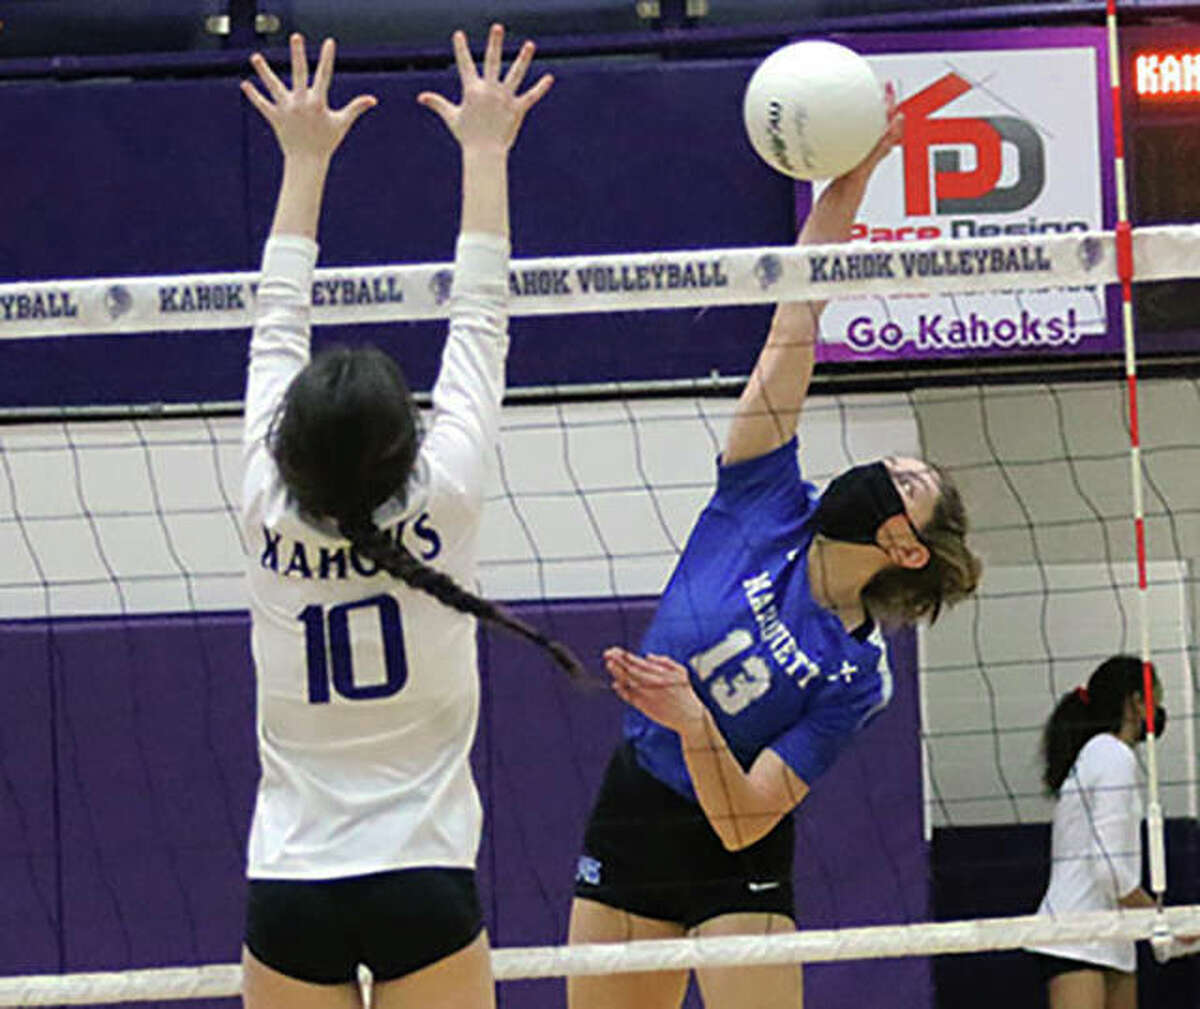 Marquette Catholic's Kristine Lauritzen hits past the block of Collinsville's Lexi Biciocchi (10) in a March 17 match at Collinsville. On Wednesday, Lauritzen had four kills in the Explorers' loss at Freeburg.